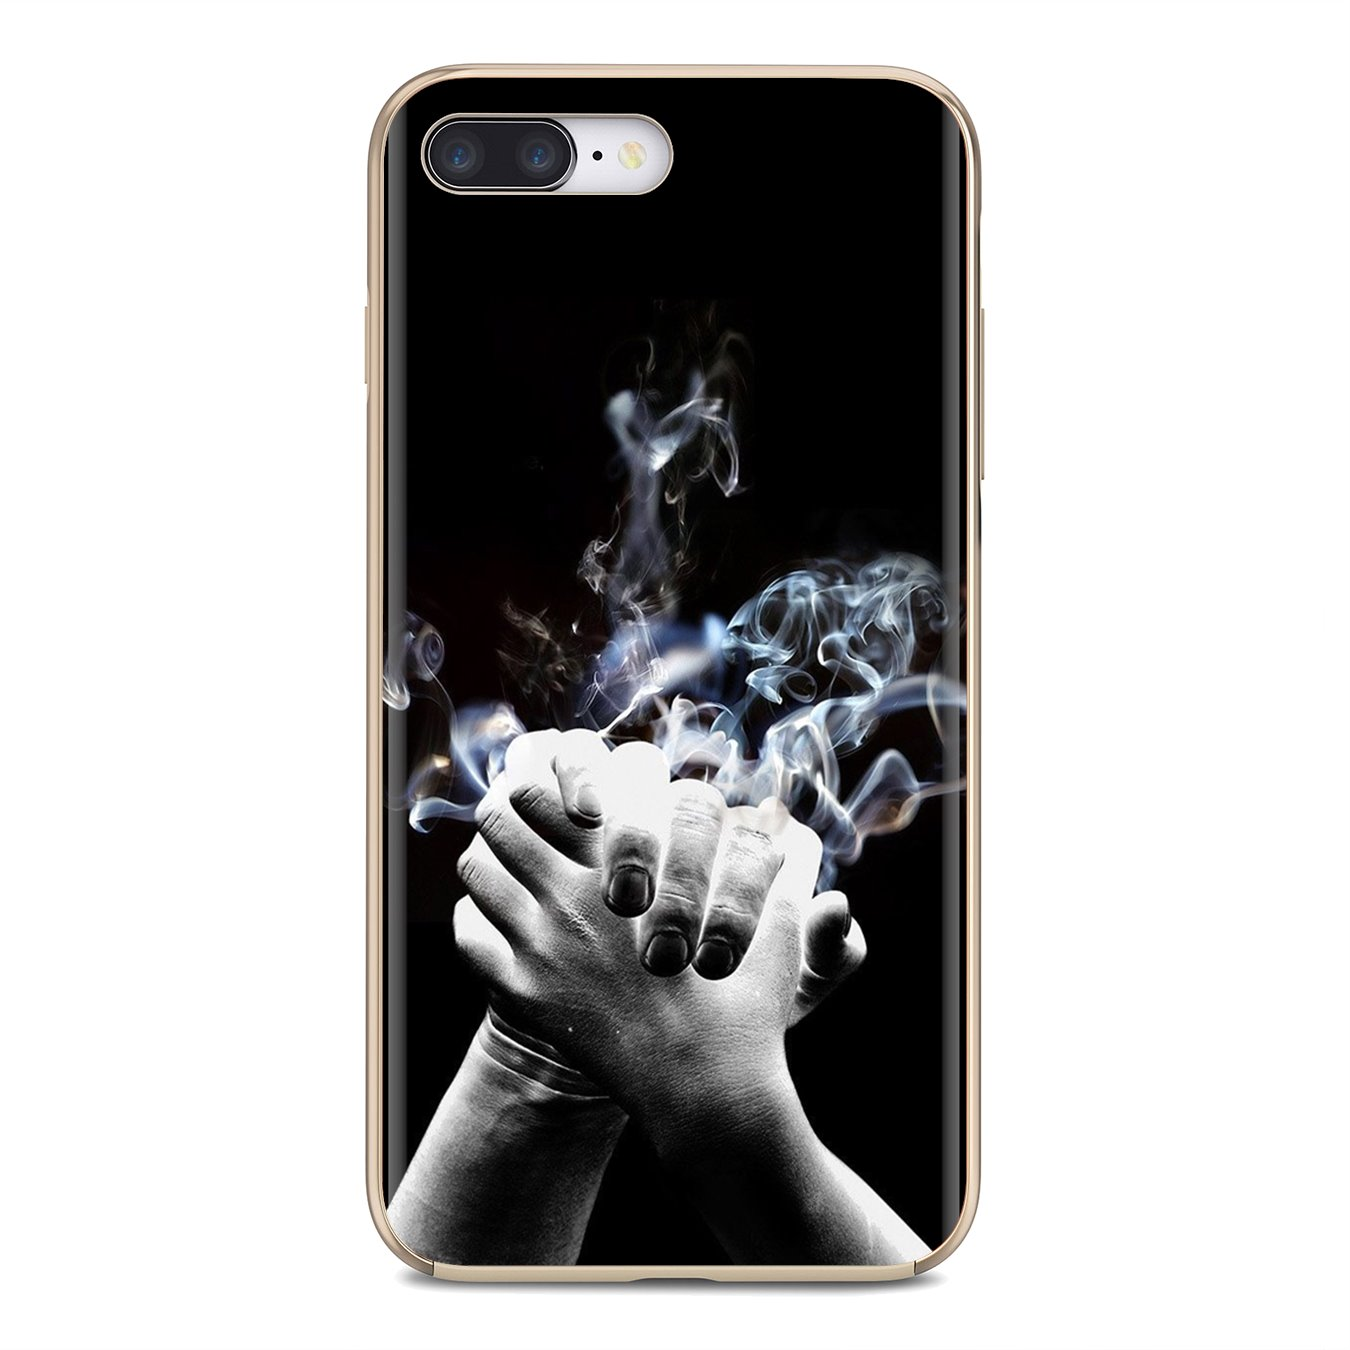 Dark Black Wallpapers Hd For Iphone 11 Pro 4 4s 5 5s Se 5c 6 6s 7 8 X Xr Xs Plus Max For Ipod Touch Silicone Case Cover Fitted Cases Aliexpress